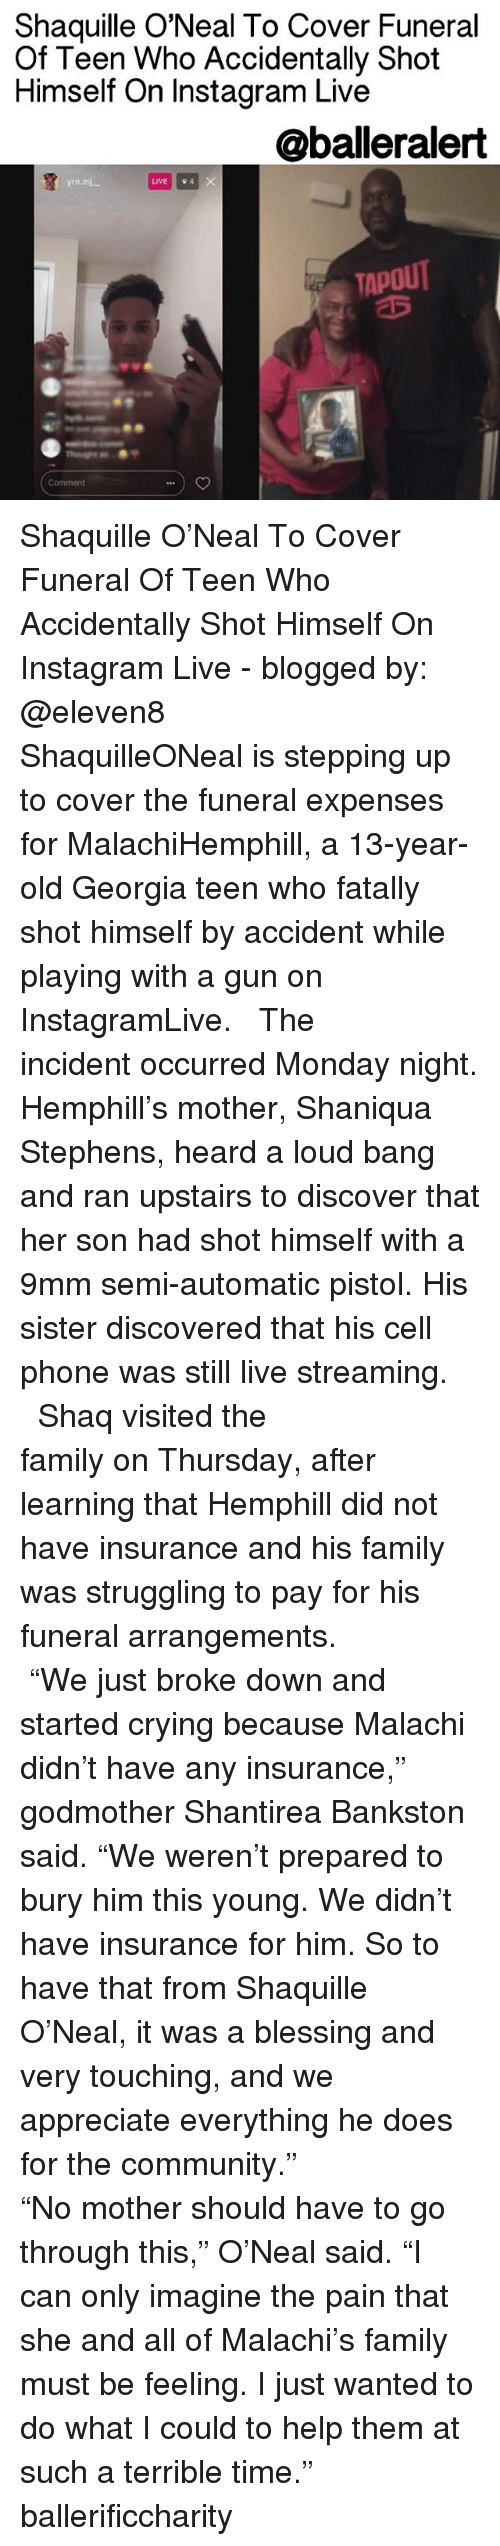 "9mm: Shaquille O'Neal To Cover Funeral  Of Teen Who Accidentally Shot  Himself on Instagram Live  oballeralert  LIVE  4  TAPOUT Shaquille O'Neal To Cover Funeral Of Teen Who Accidentally Shot Himself On Instagram Live - blogged by: @eleven8 ⠀⠀⠀⠀⠀⠀⠀⠀⠀ ⠀⠀⠀⠀⠀⠀⠀⠀⠀ ShaquilleONeal is stepping up to cover the funeral expenses for MalachiHemphill, a 13-year-old Georgia teen who fatally shot himself by accident while playing with a gun on InstagramLive. ⠀⠀⠀⠀⠀⠀⠀⠀⠀ ⠀⠀⠀⠀⠀⠀⠀⠀⠀ The incident occurred Monday night. Hemphill's mother, Shaniqua Stephens, heard a loud bang and ran upstairs to discover that her son had shot himself with a 9mm semi-automatic pistol. His sister discovered that his cell phone was still live streaming. ⠀⠀⠀⠀⠀⠀⠀⠀⠀ ⠀⠀⠀⠀⠀⠀⠀⠀⠀ Shaq visited the family on Thursday, after learning that Hemphill did not have insurance and his family was struggling to pay for his funeral arrangements. ⠀⠀⠀⠀⠀⠀⠀⠀⠀ ⠀⠀⠀⠀⠀⠀⠀⠀⠀ ""We just broke down and started crying because Malachi didn't have any insurance,"" godmother Shantirea Bankston said. ""We weren't prepared to bury him this young. We didn't have insurance for him. So to have that from Shaquille O'Neal, it was a blessing and very touching, and we appreciate everything he does for the community."" ⠀⠀⠀⠀⠀⠀⠀⠀⠀ ⠀⠀⠀⠀⠀⠀⠀⠀⠀ ""No mother should have to go through this,"" O'Neal said. ""I can only imagine the pain that she and all of Malachi's family must be feeling. I just wanted to do what I could to help them at such a terrible time."" ballerificcharity"